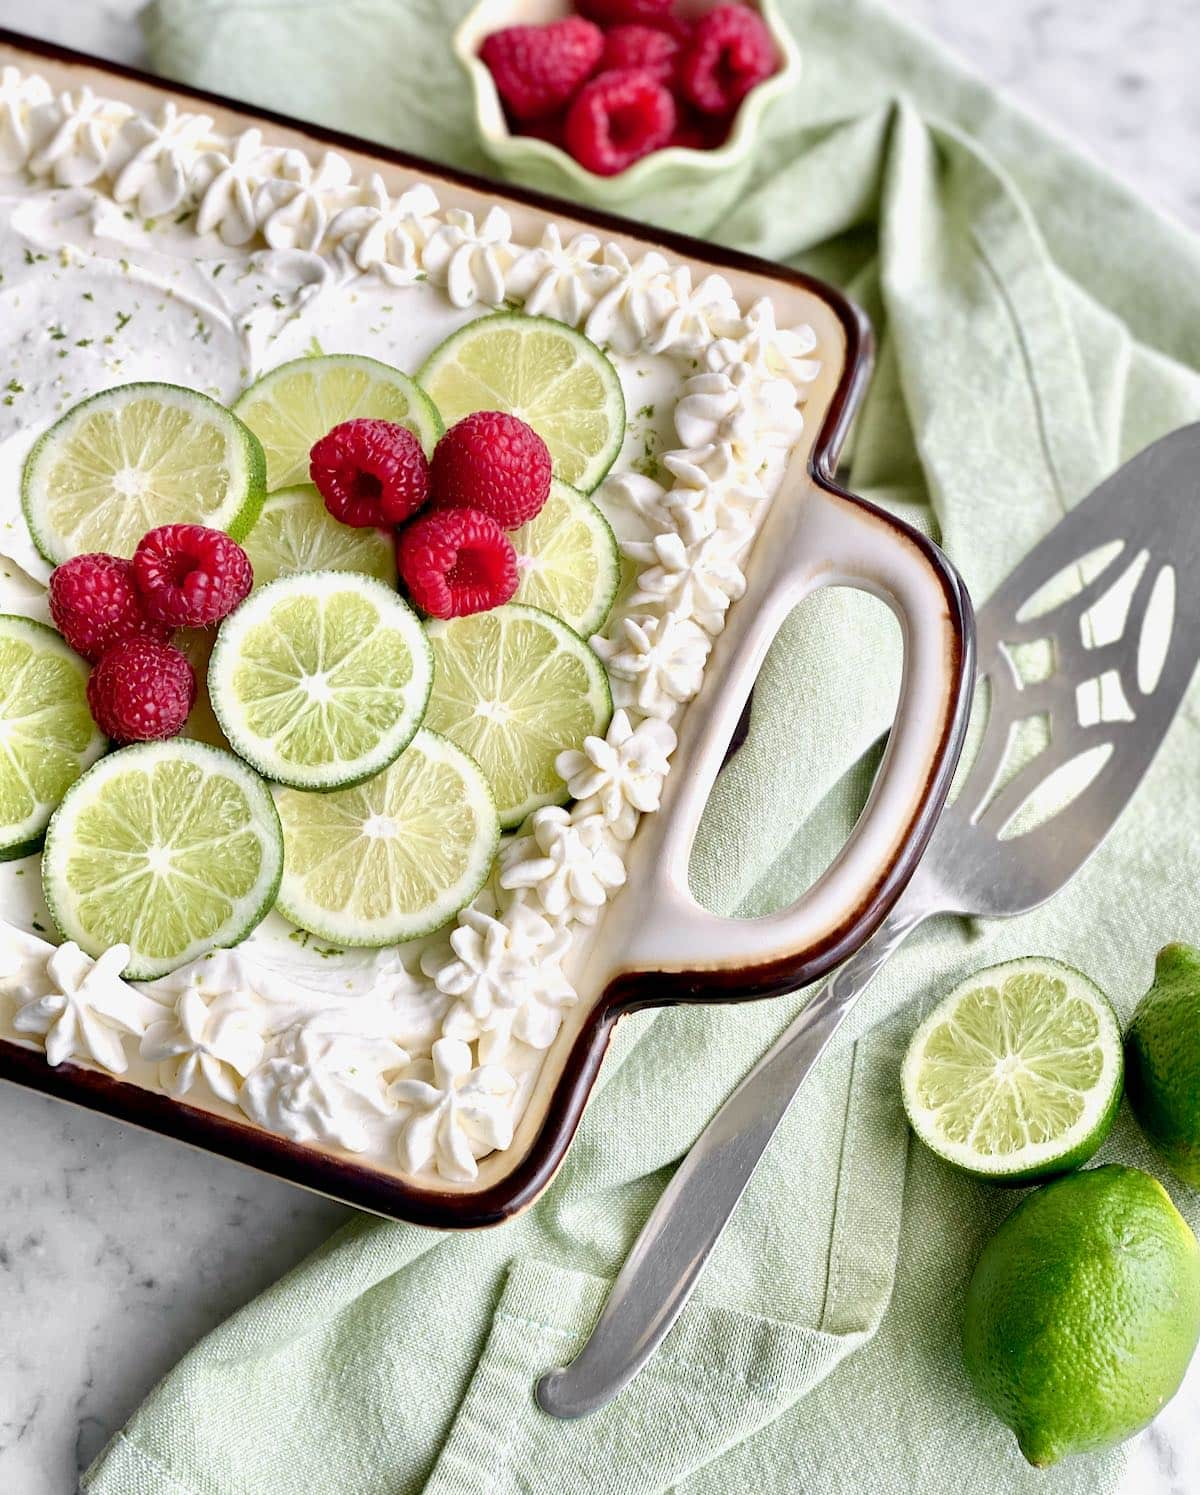 cake in a baking dish with green towel wrapped around the side.